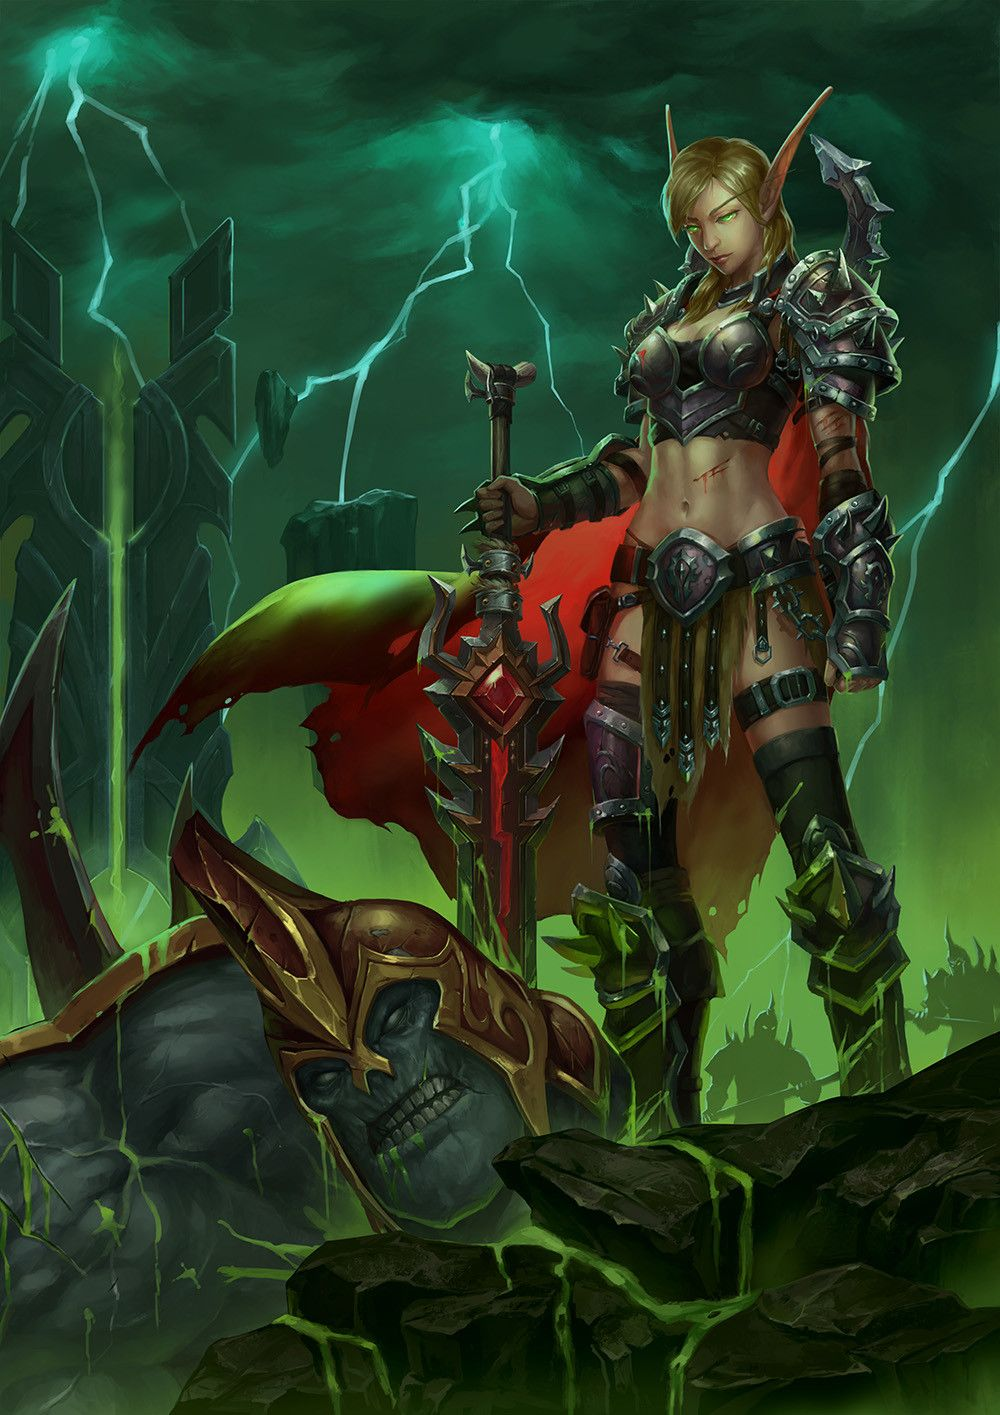 Pin By Mrhem On Wow In 2019 Warcraft Art Fantasy Art Elf Warrior